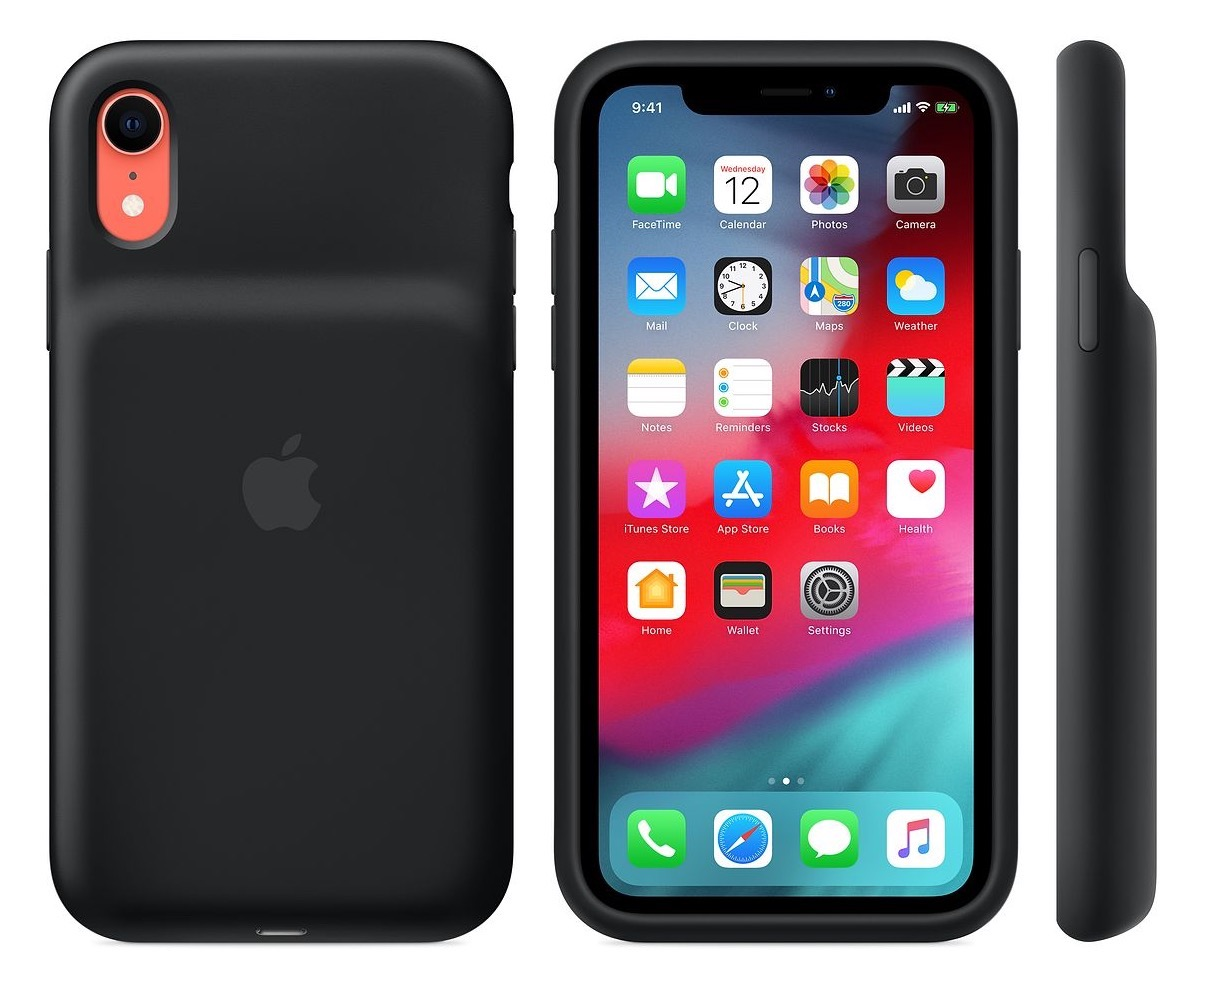 iPhone XS/XS Max/XR向けApple純正バッテリー内蔵ケース「Smart Battery Case」発売開始